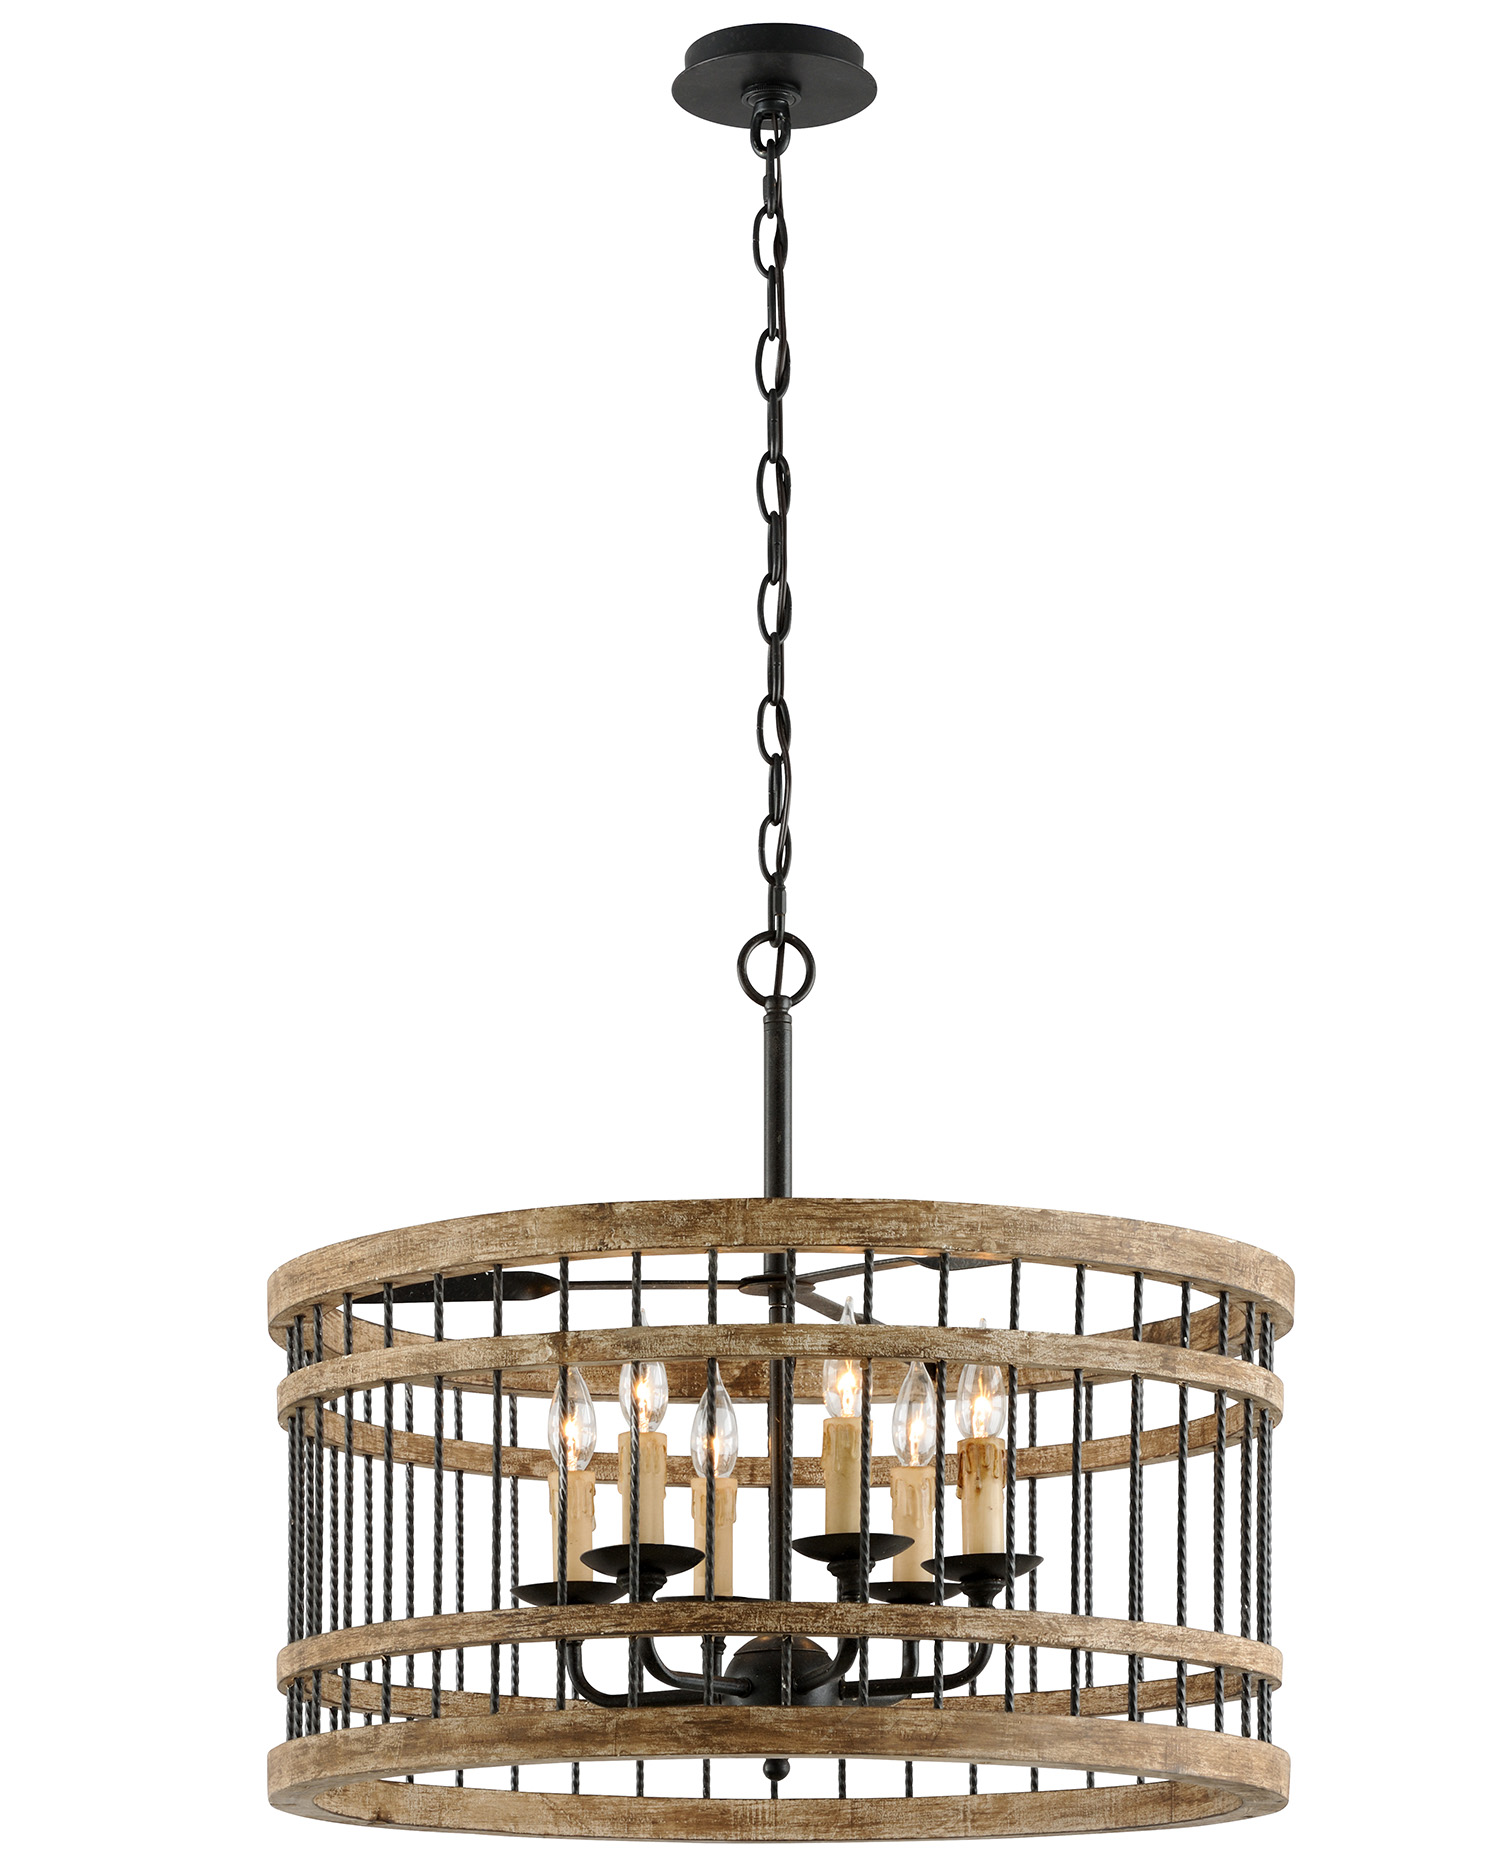 Vineyard is available in four pendant sizes, including dining and a two-light wall sconce.